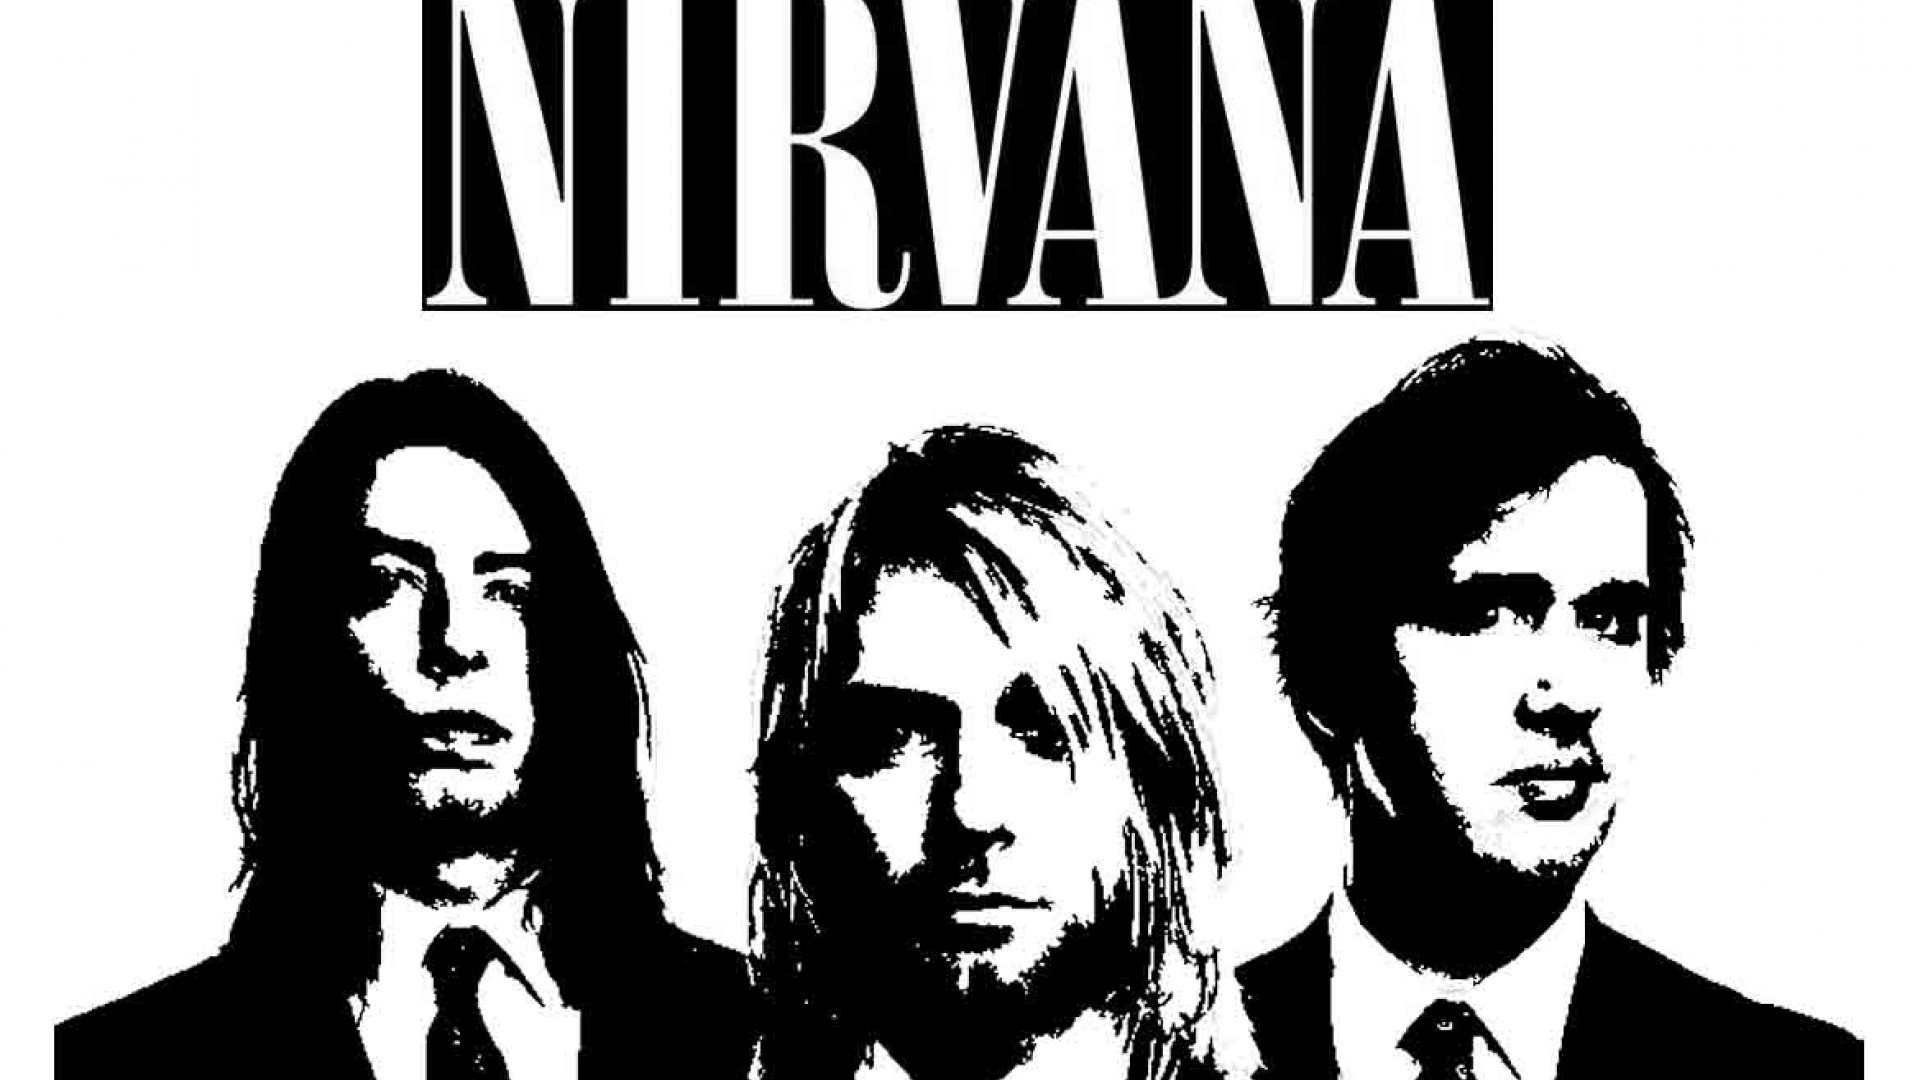 nirvana wallpaper for iphone 6